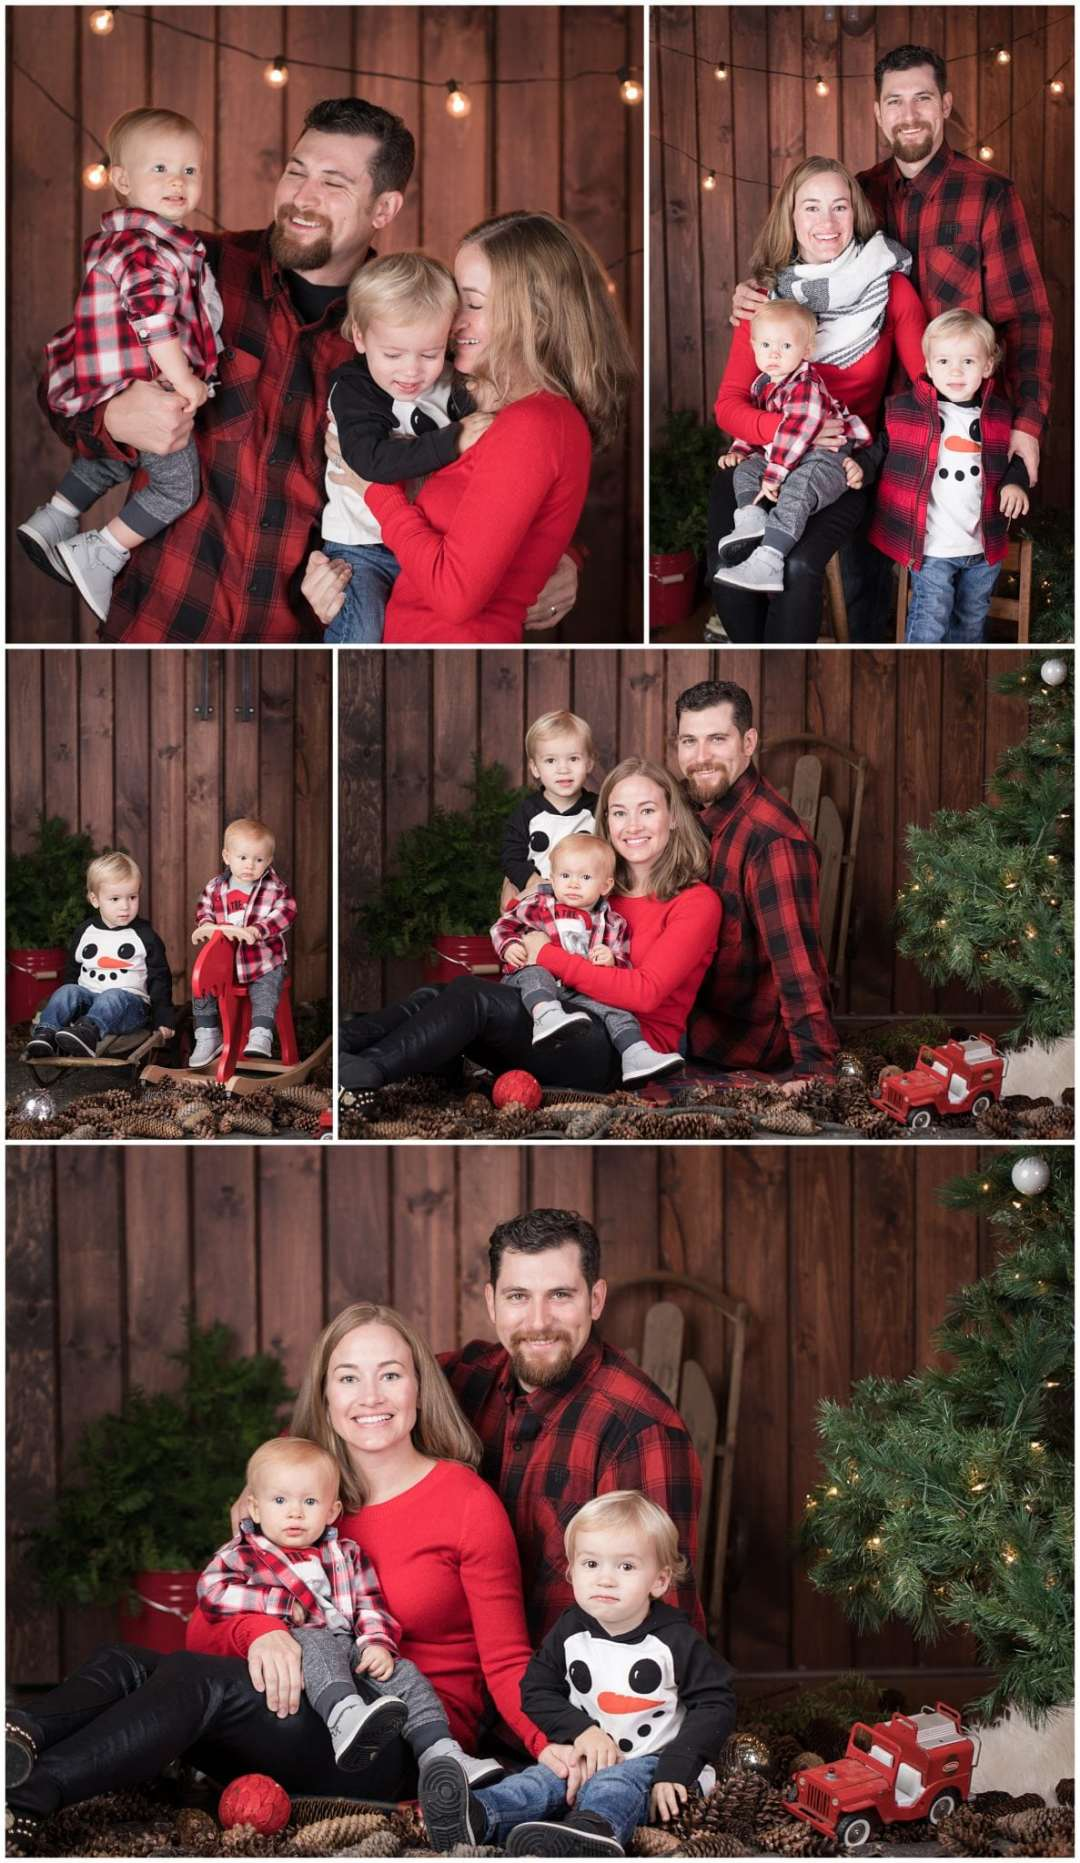 ChristmasMiniSessions_family-baby-kids_Berks-County-Reading-PA_0004.jpg